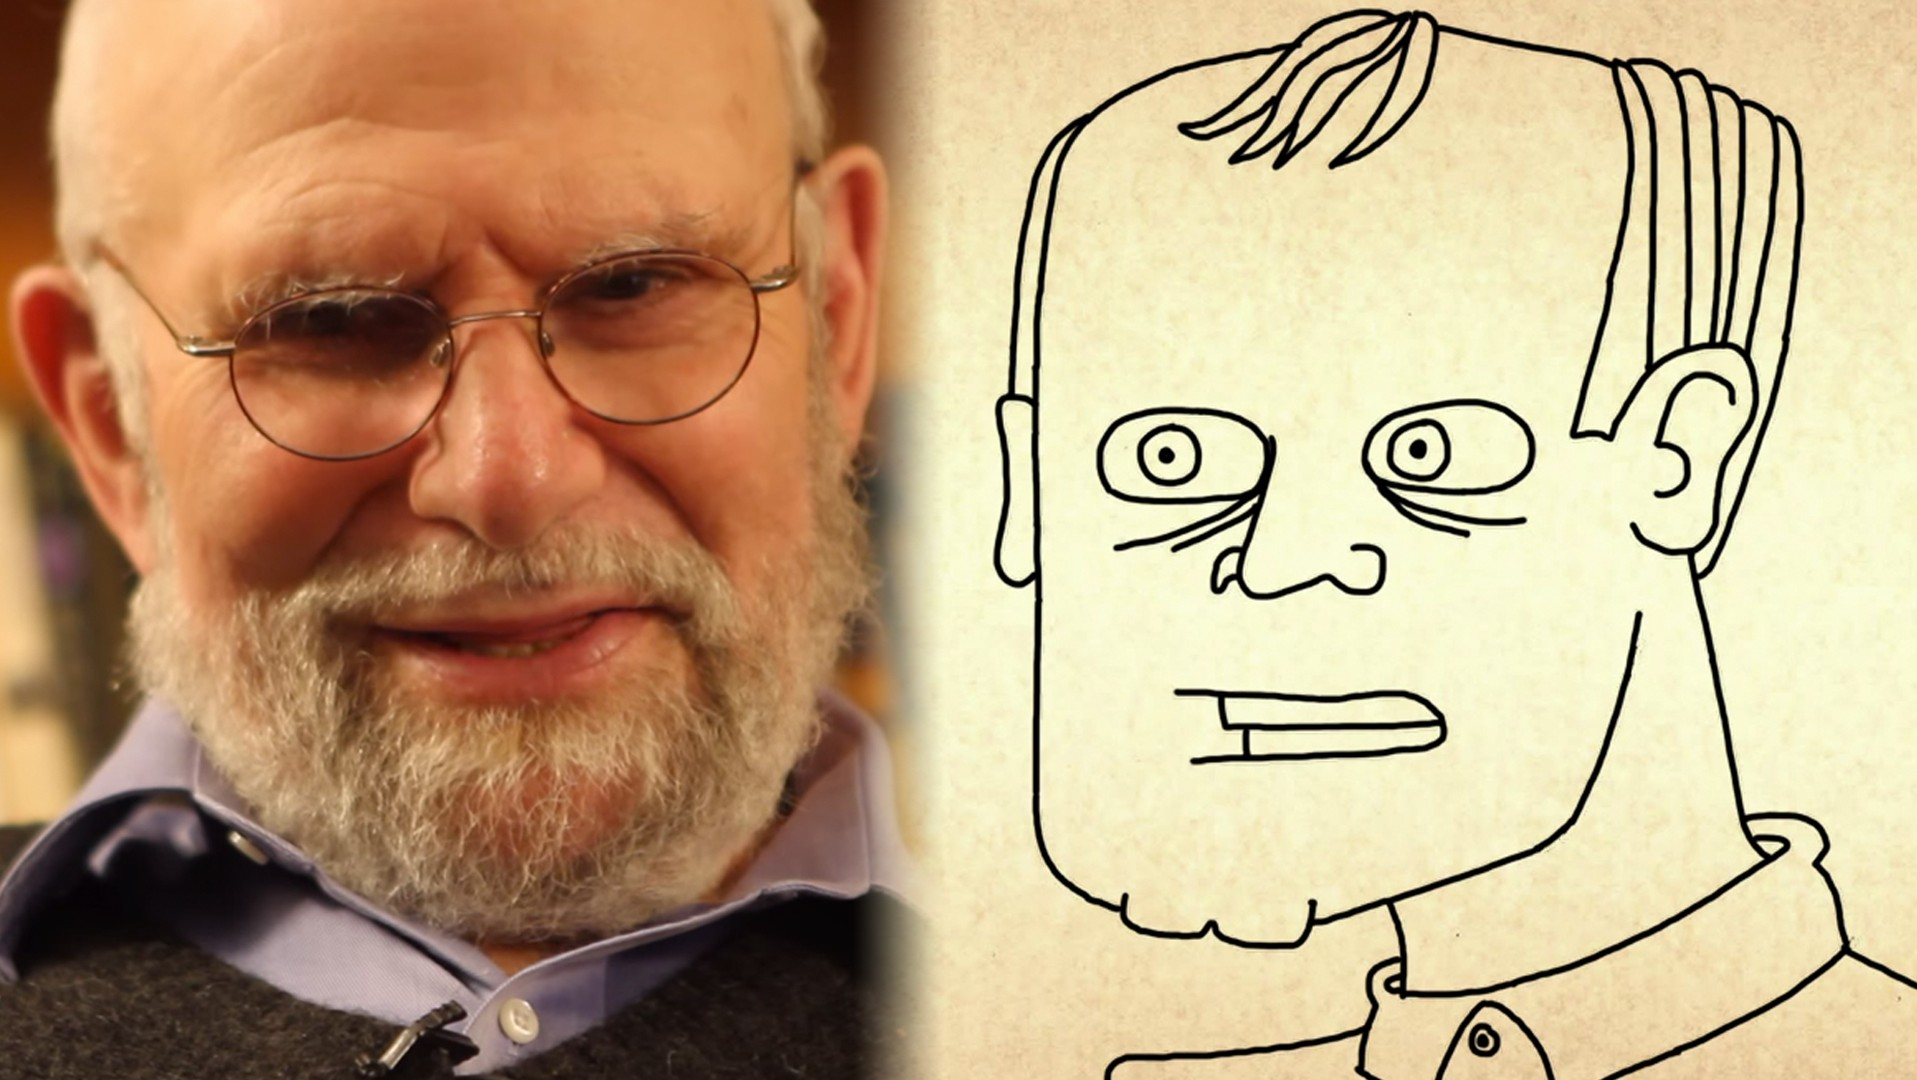 Oliver Sacks on Five Common Types of Hallucinations